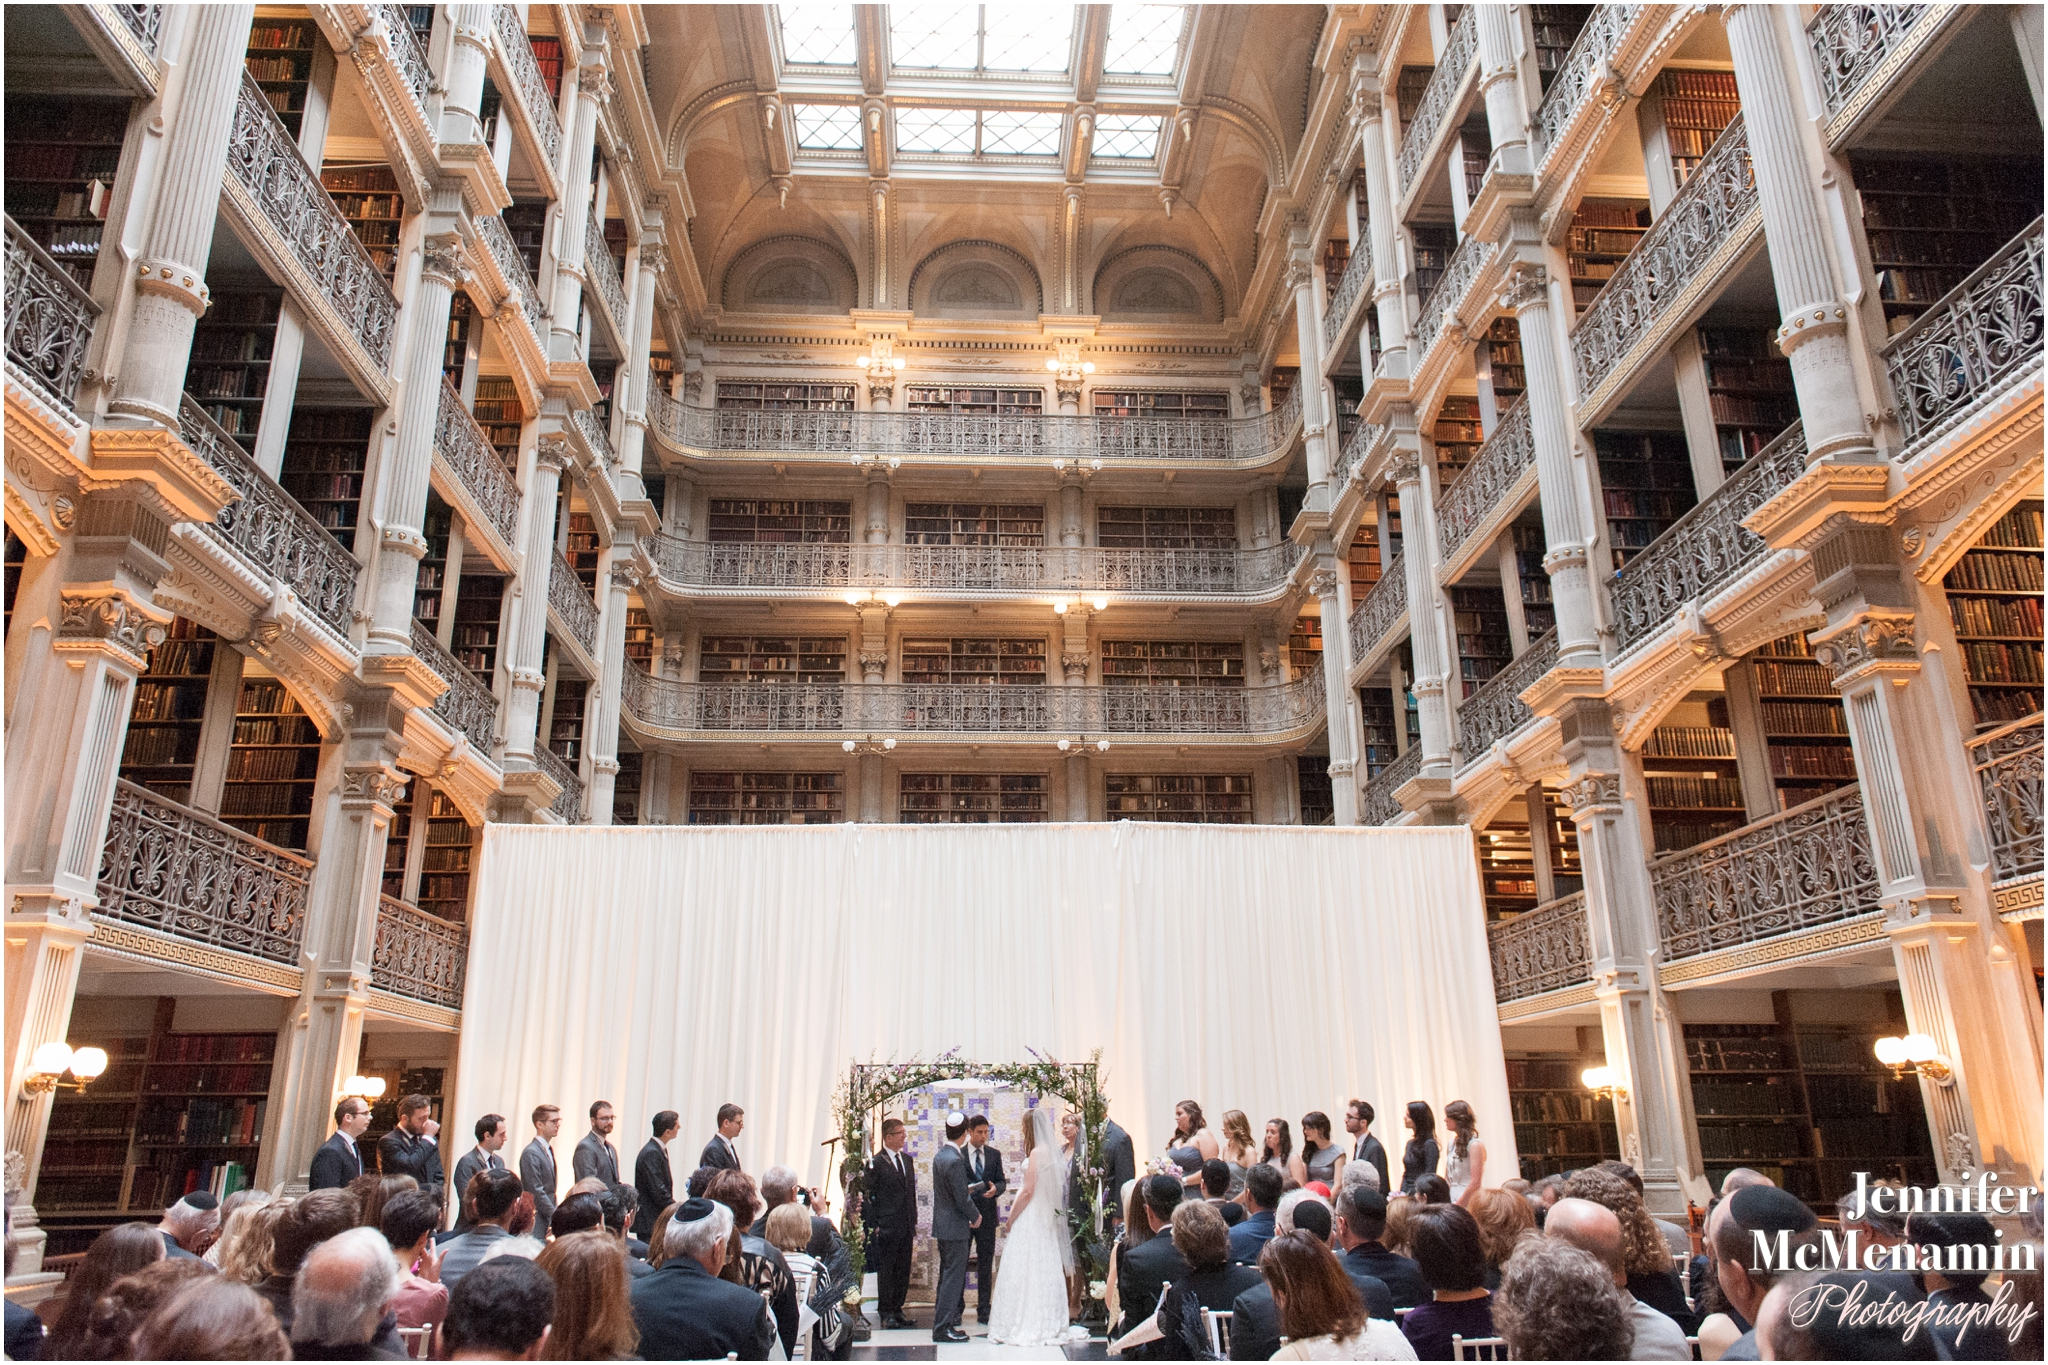 0069-WebbSlivnick_02649-0532_JenniferMcMenaminPhotography_George-Peabody-Library-wedding_Baltimore-wedding-photography_Baltimore-wedding-photographer